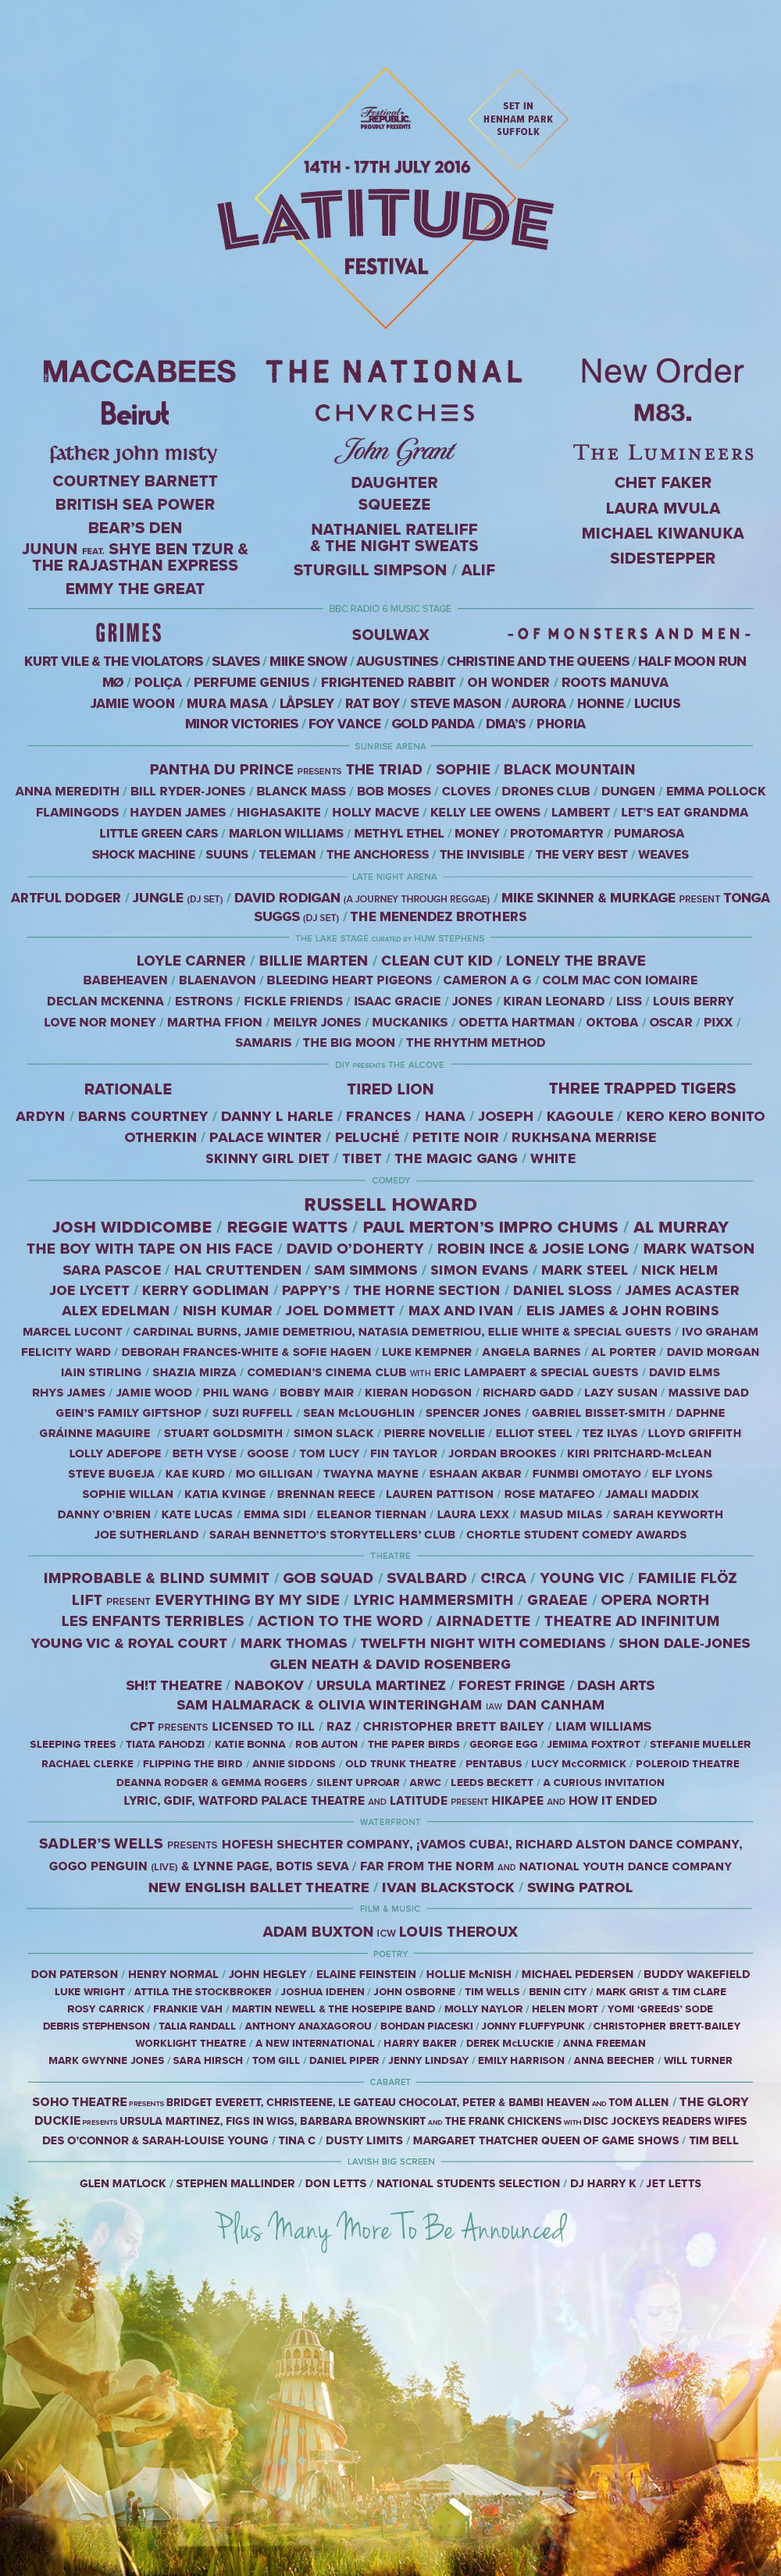 NEWS: Latitude Festival announces its dance line-up plus more theatre and music acts